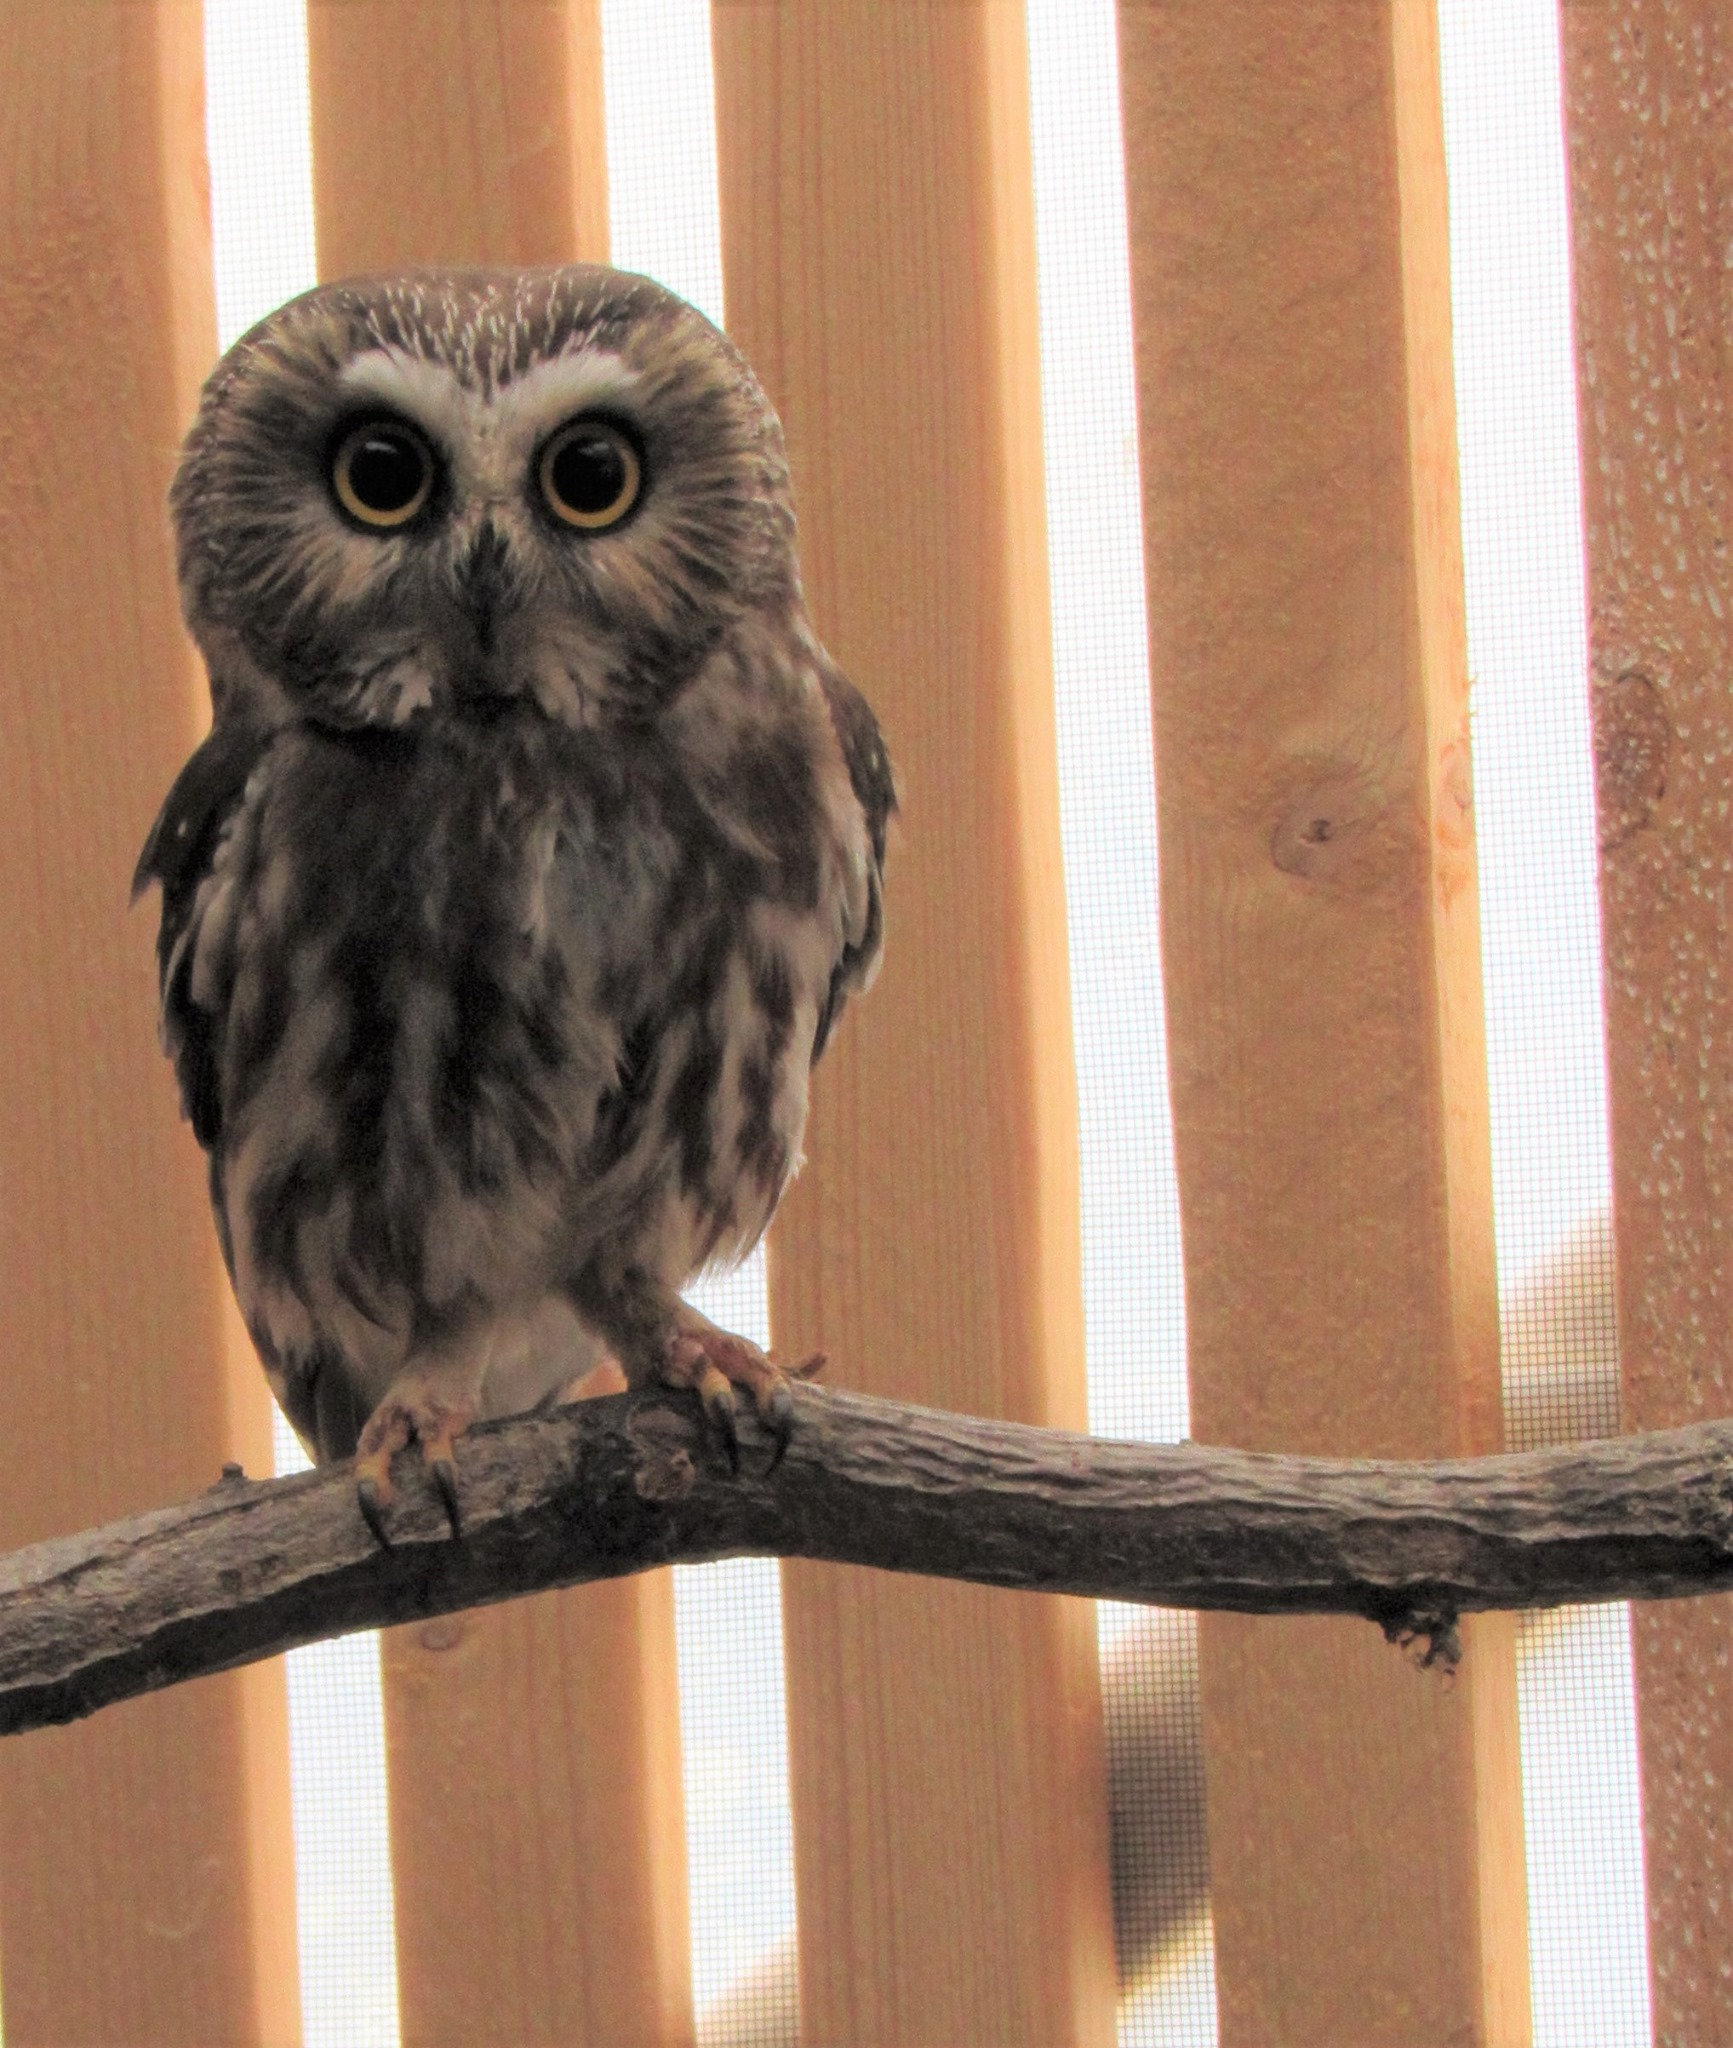 This beautiful Saw-whet Owl is back in the wild now after have recovered from a snow/ice related event.